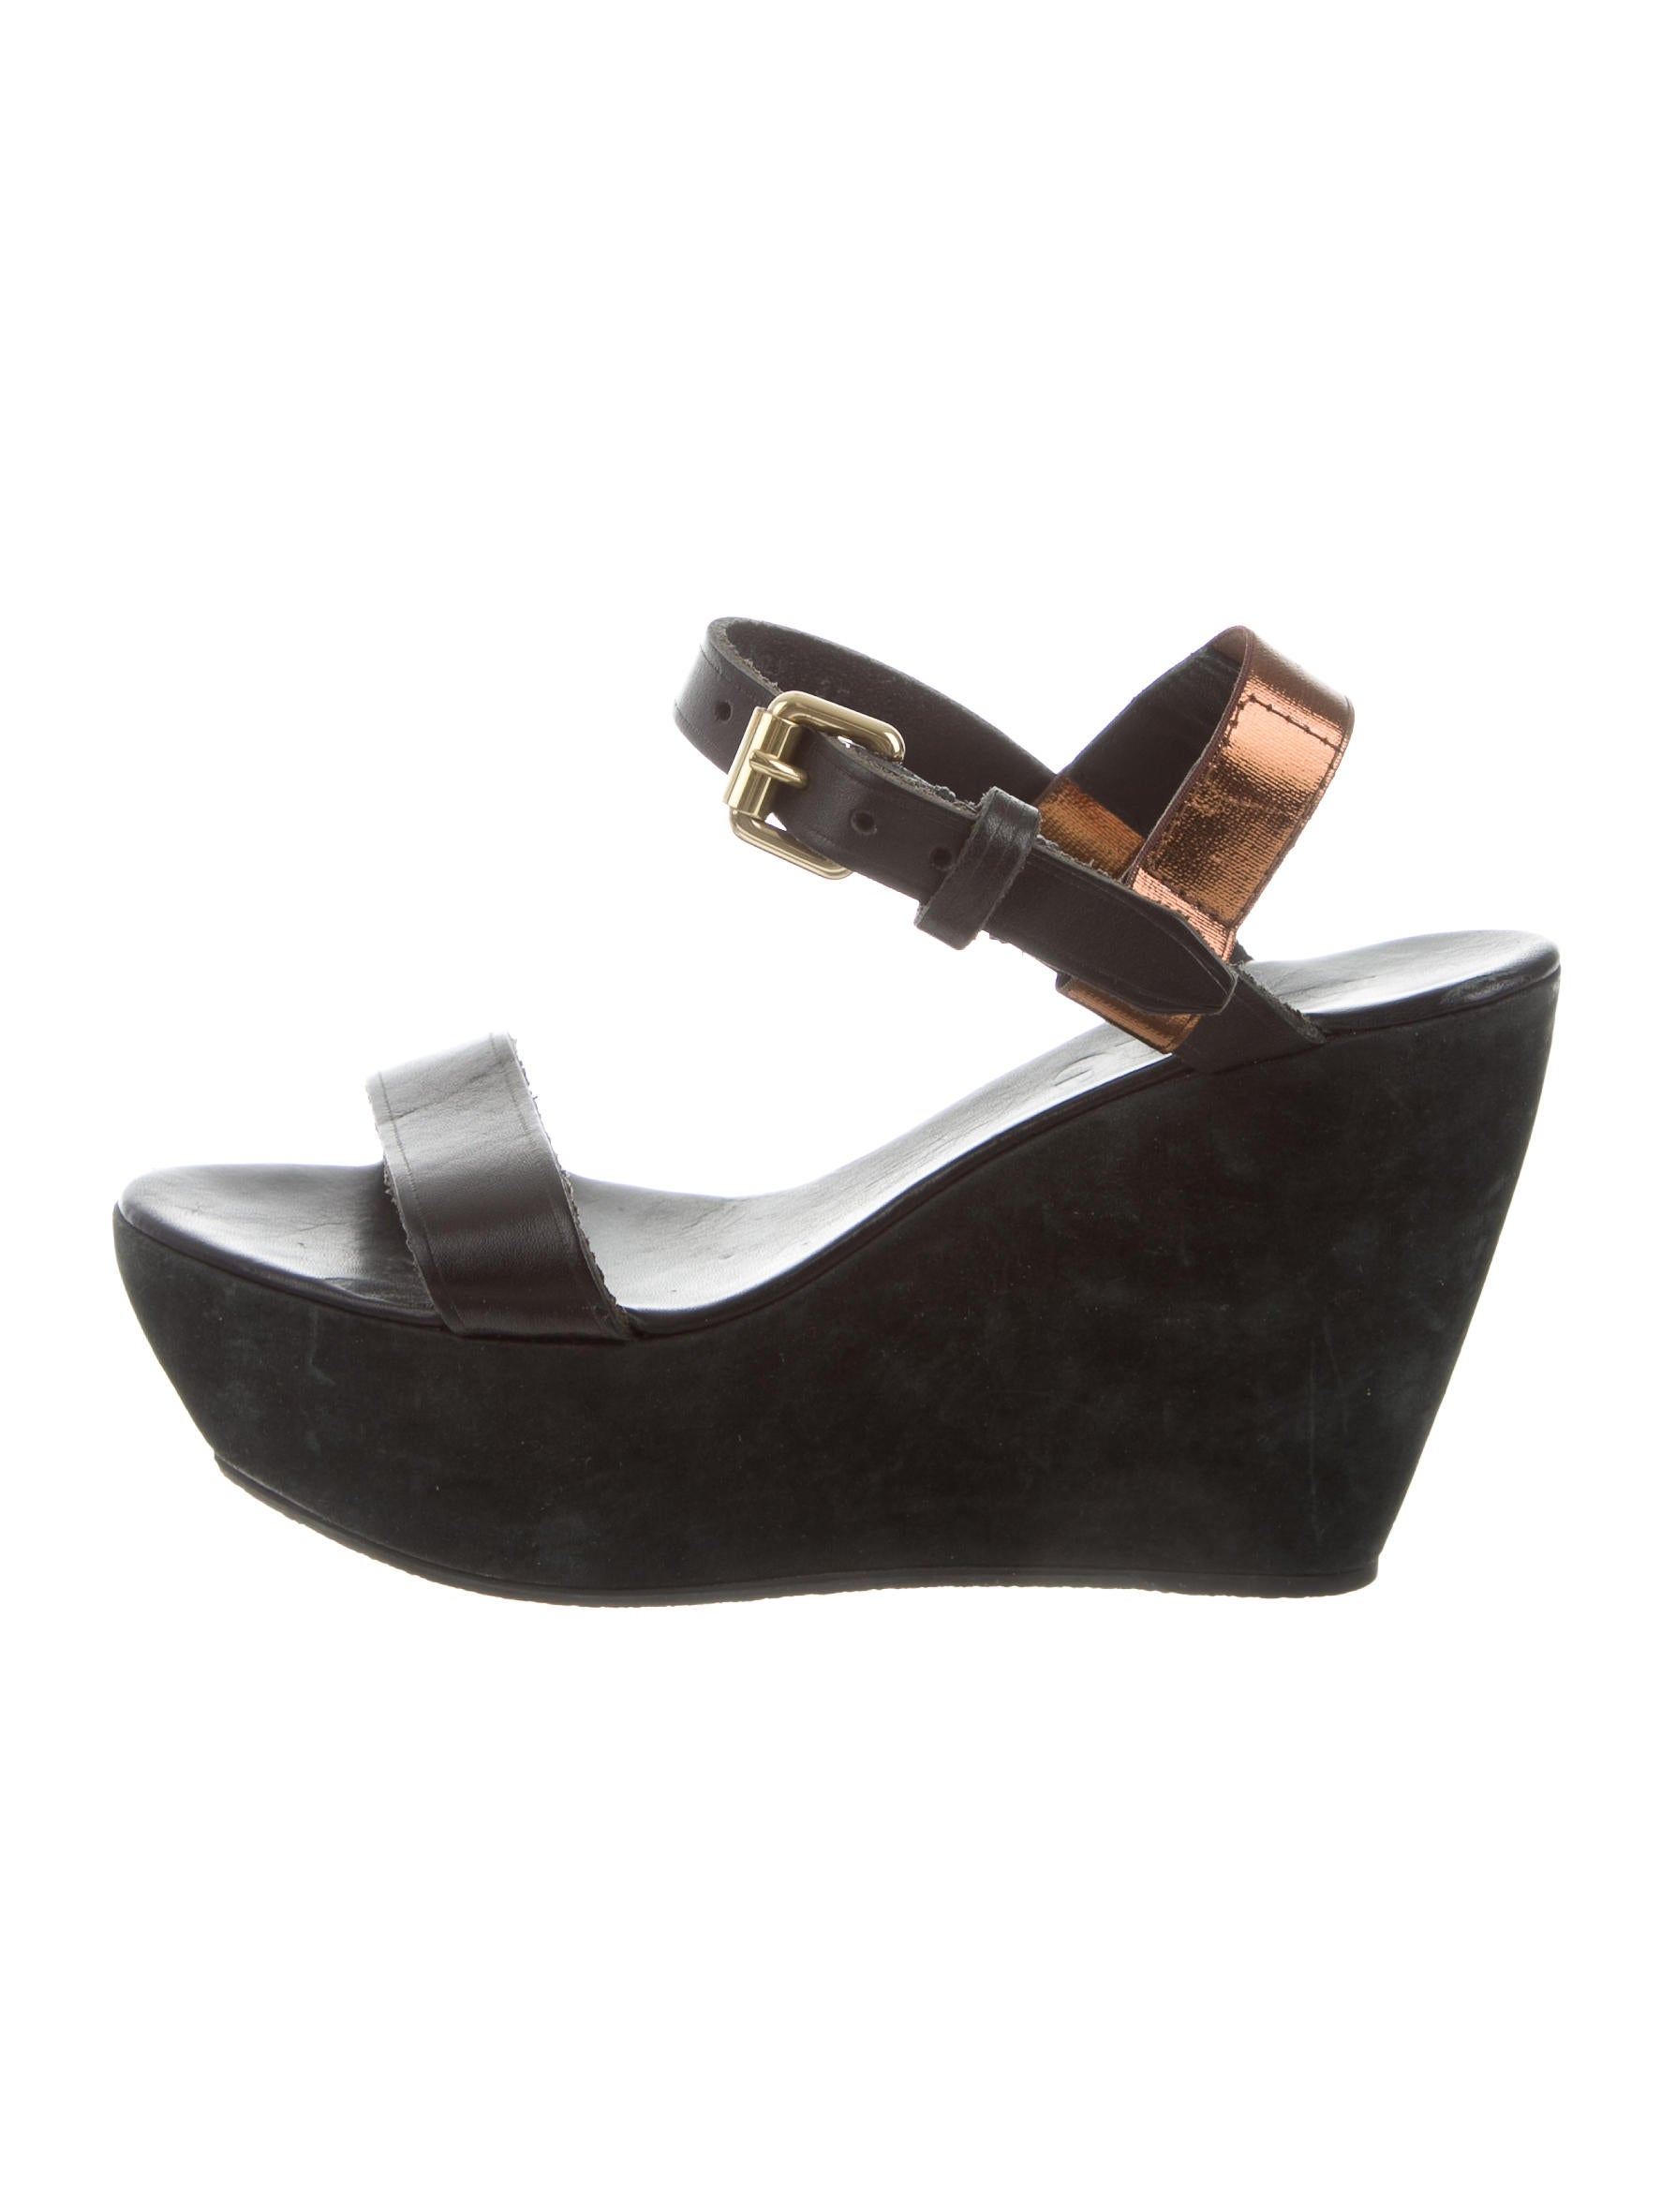 To dress your flats up, try pointed-toe shoes with an animal print or a higher heel. Leather—with a bow or a buckle—is a great accent to a suit or dress, with enough allure to wear more than a few days a week. Looking for the perfect pair of shoes for the office? Pumps are a classic way to accessorize and feel confident about your personal style. Whether you opt for stiletto heels or ankle straps, you can count .